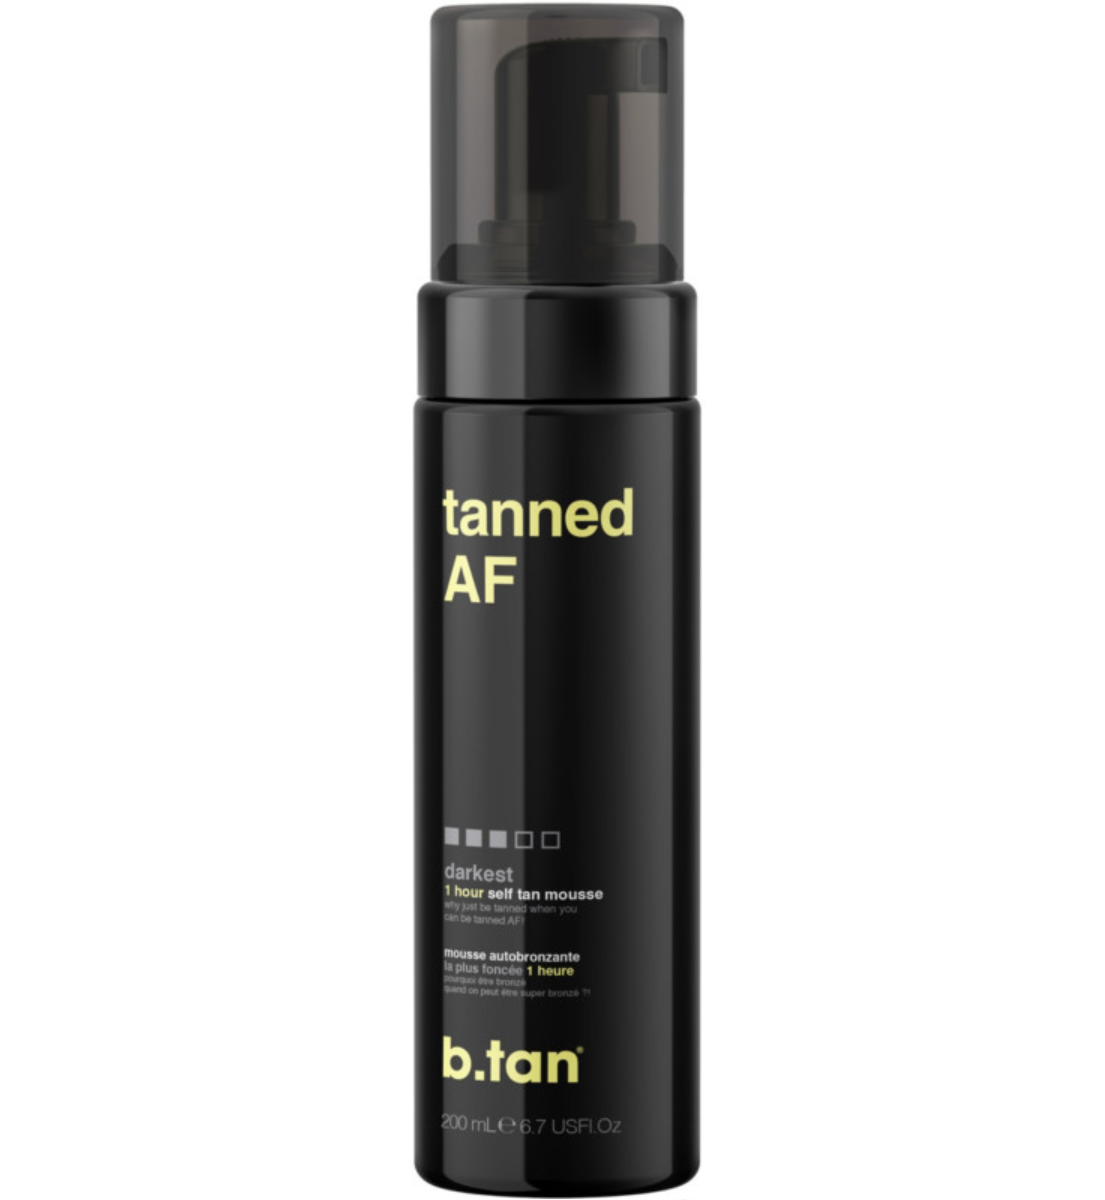 b.tan Tanned AF 1 Hour Self Tan Mousse